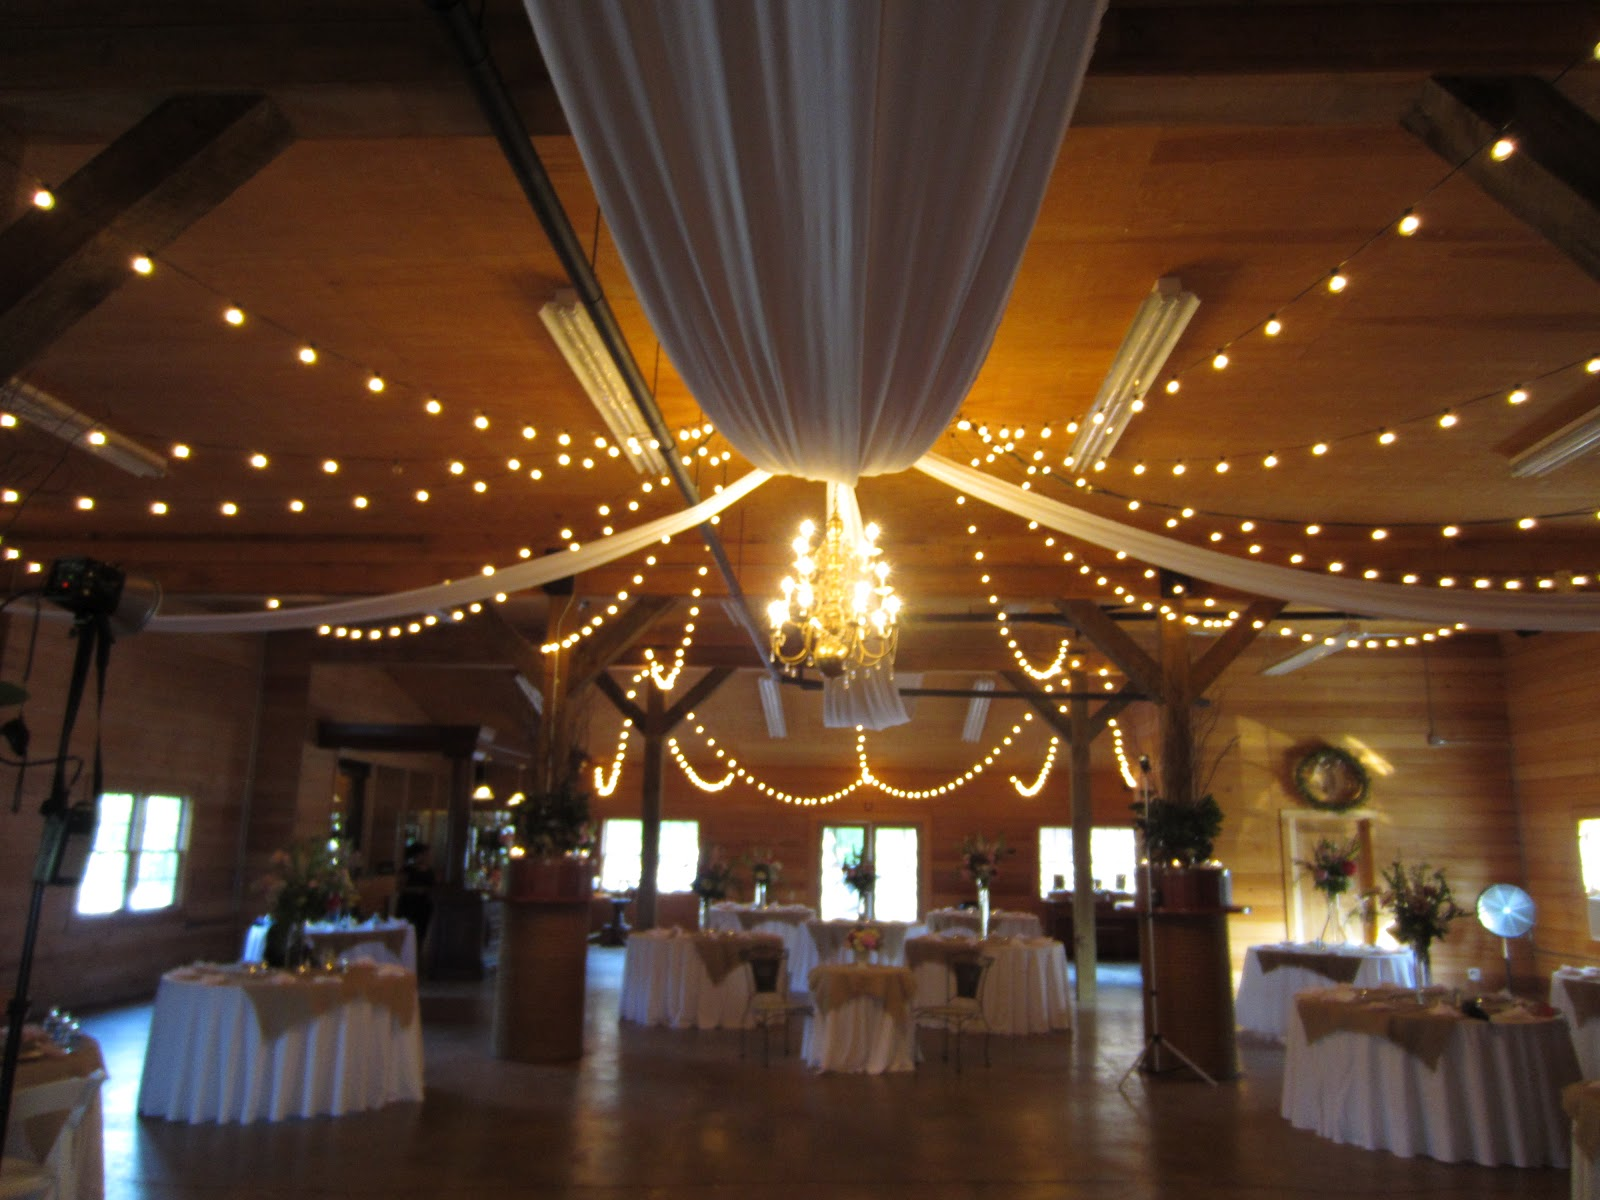 weddings and special event production and catering with